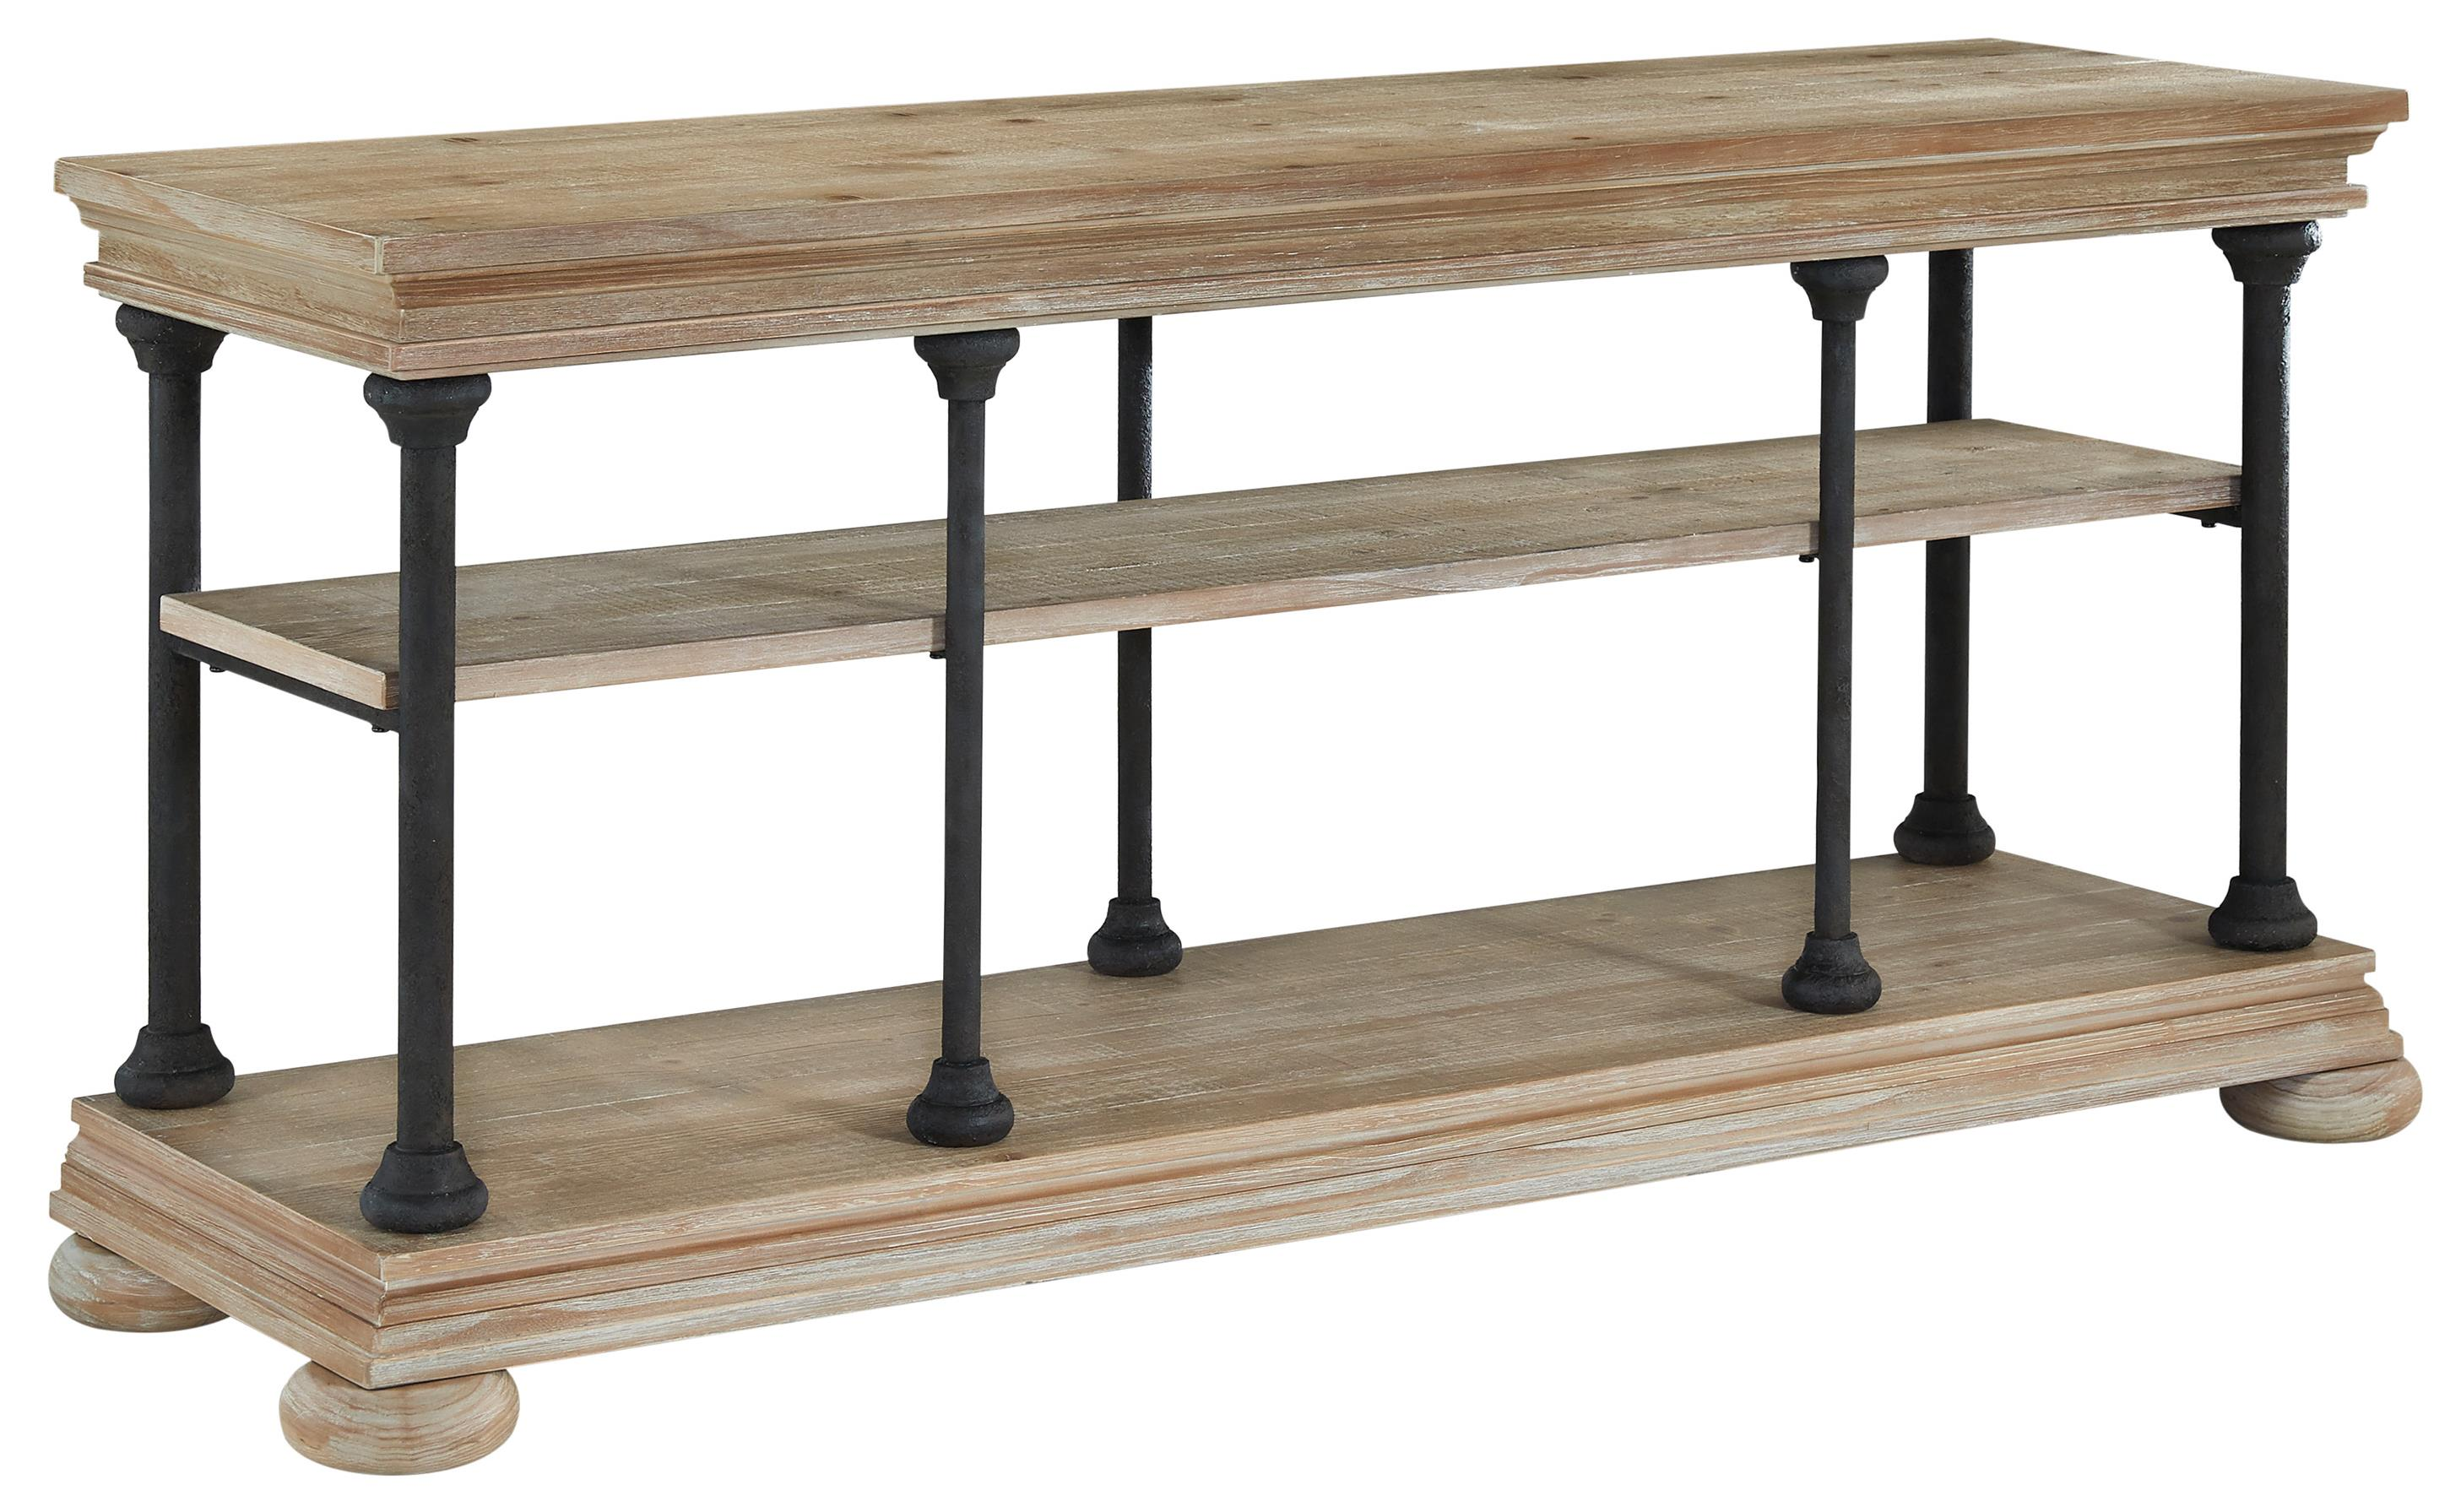 Signature Design by Ashley Shennifin Console - Item Number: H862-30